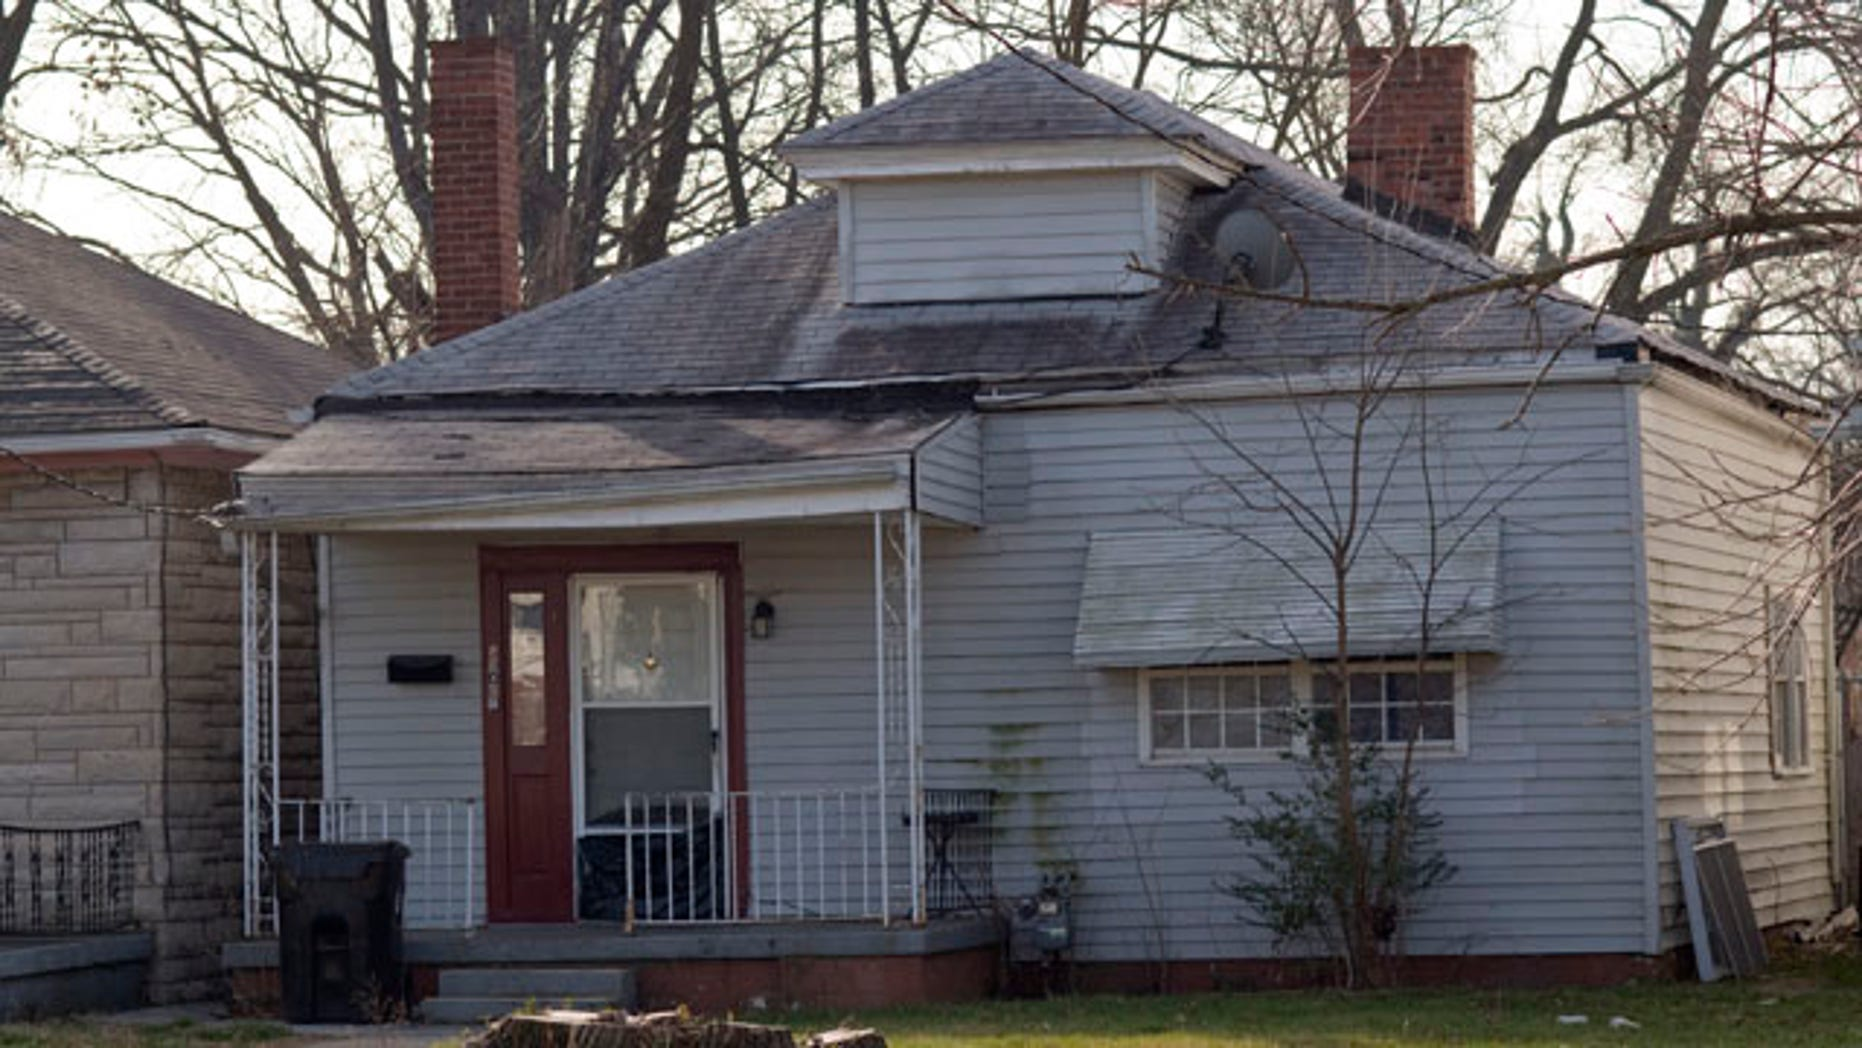 Jan. 10: This is the house where the young Cassius Clay, later to be known as Muhammad Ali, grew up in Louisville, Ky.